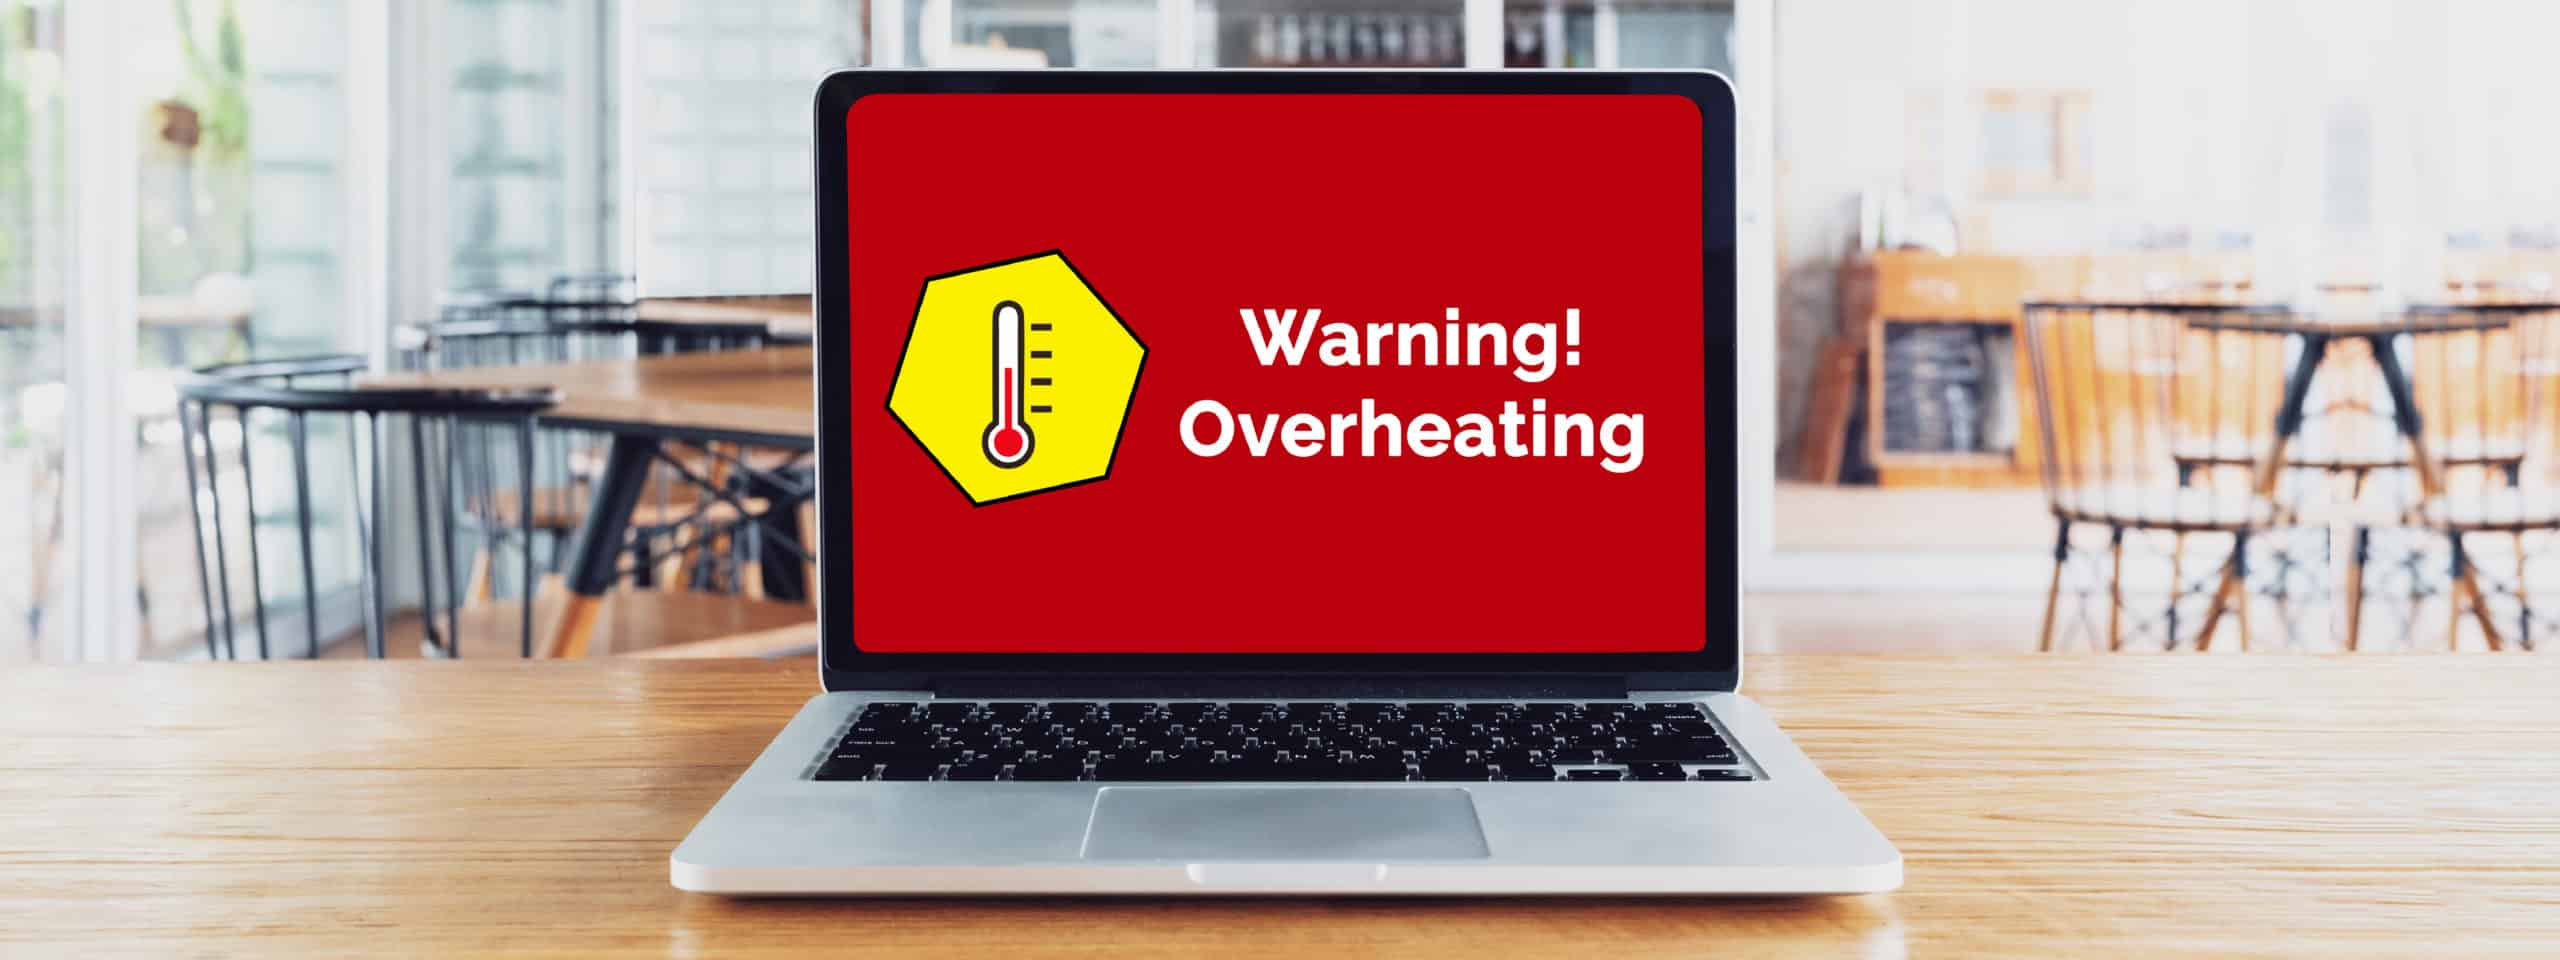 How to Prevent My Laptop from Overheating | Computing Australia